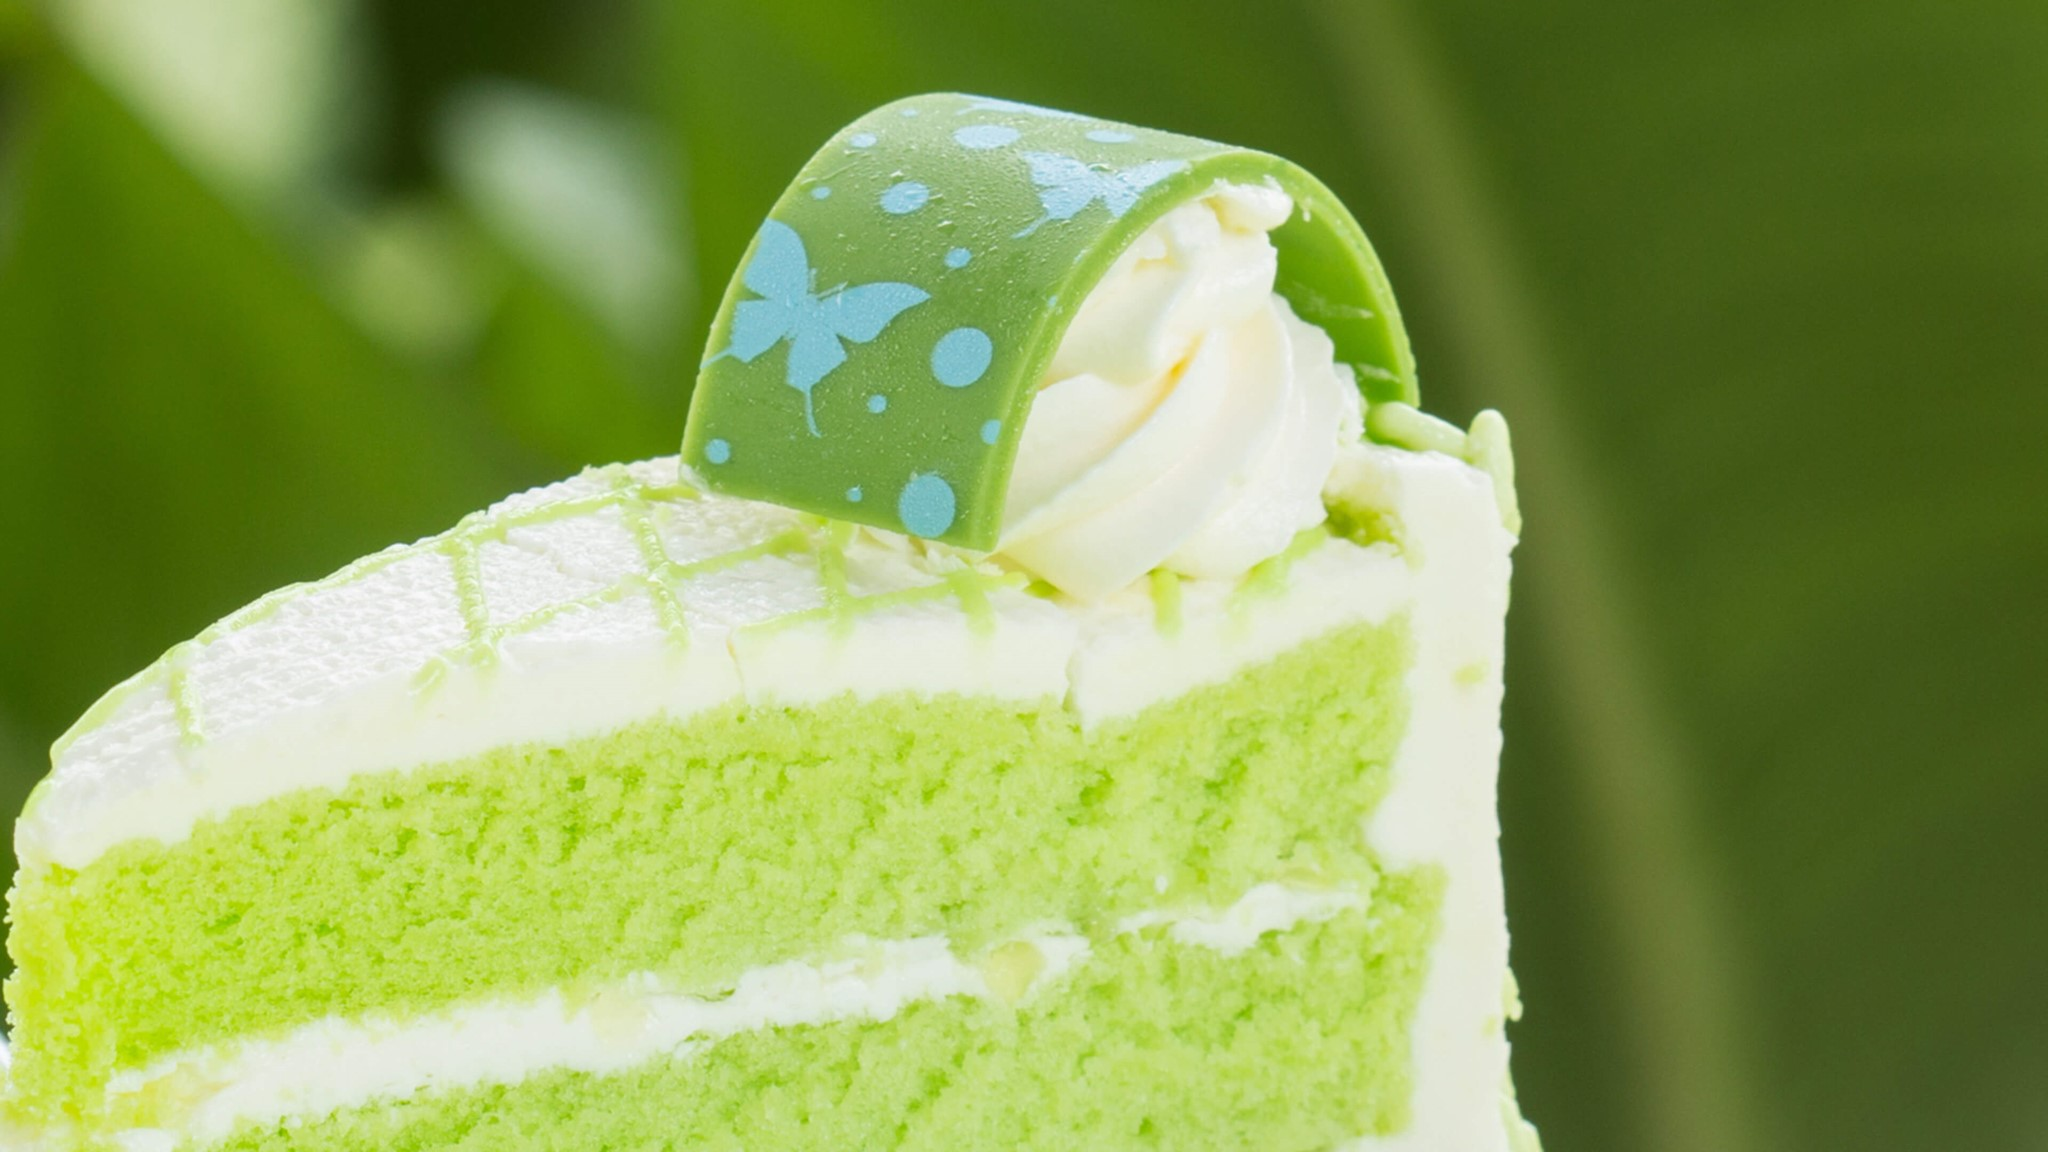 Palsgaard Offers Bakers In Asia An Active Solution To Removing Phos From Their Cakes